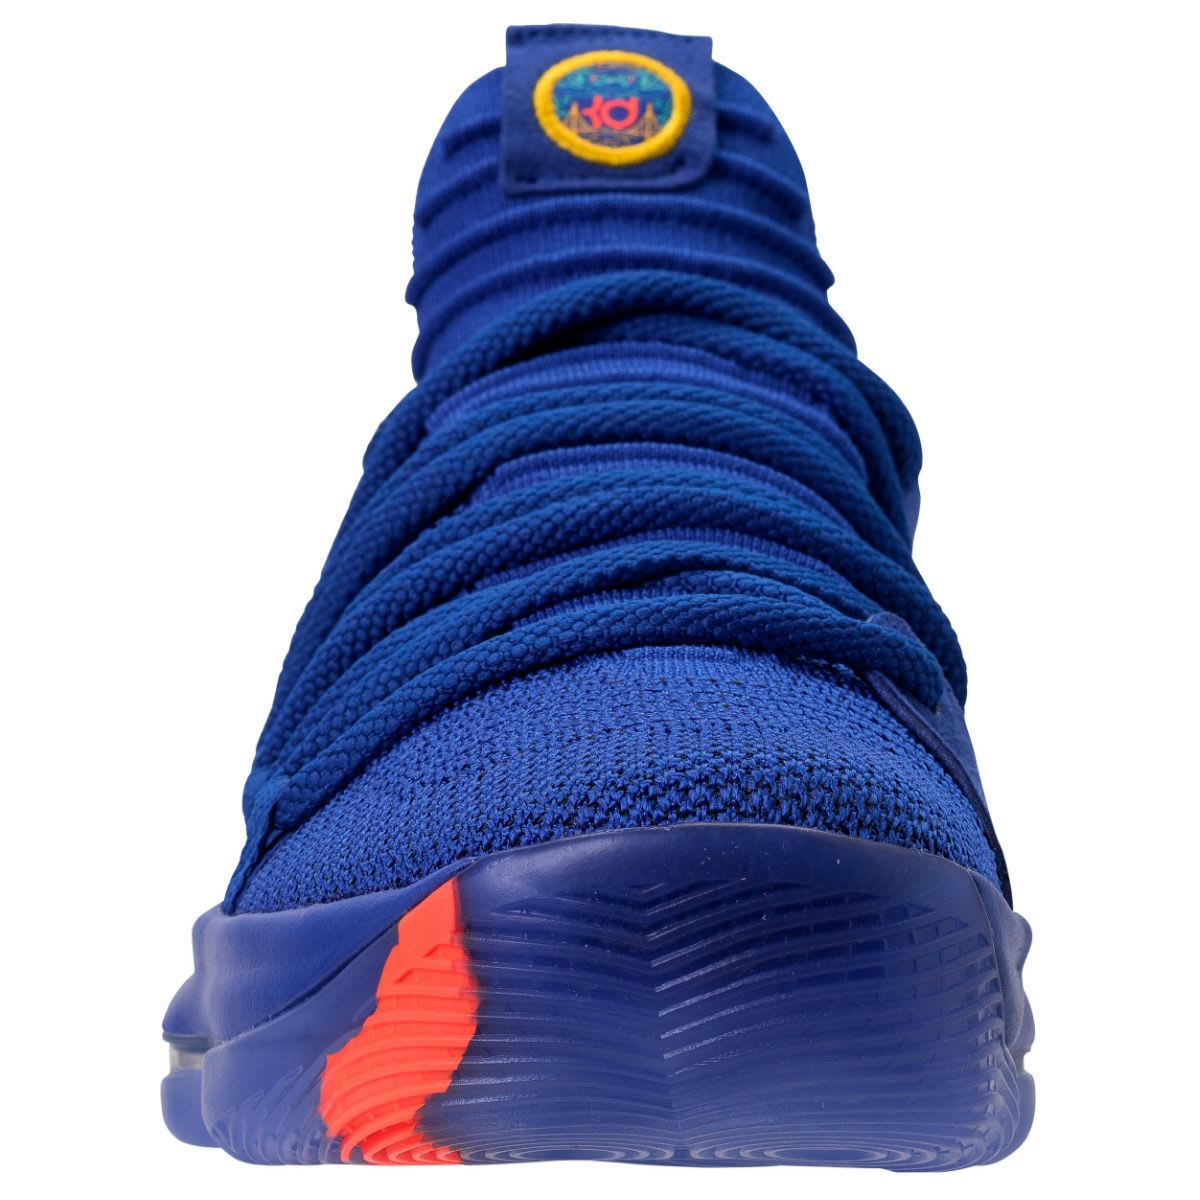 Nike KD 10 City Edition Release Date 897815-402 Front